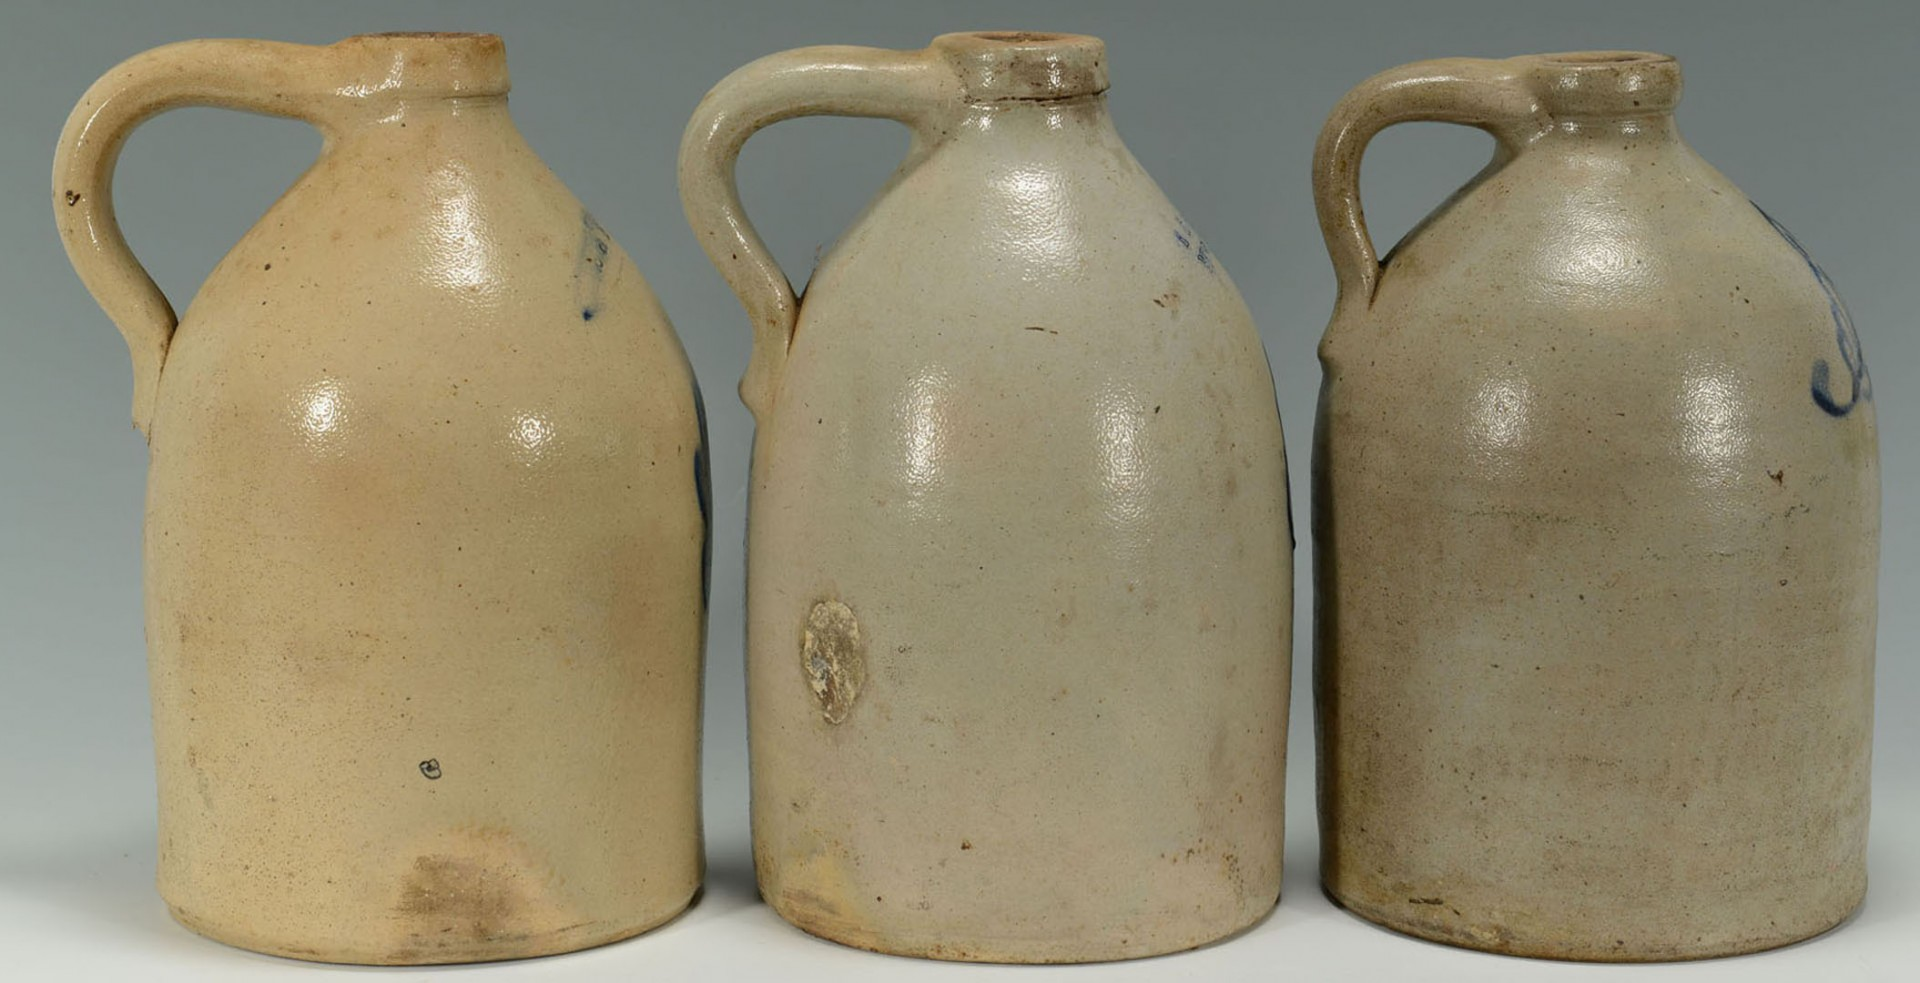 Lot 2872347: 3 New England Cobalt Decorated Stoneware Jugs